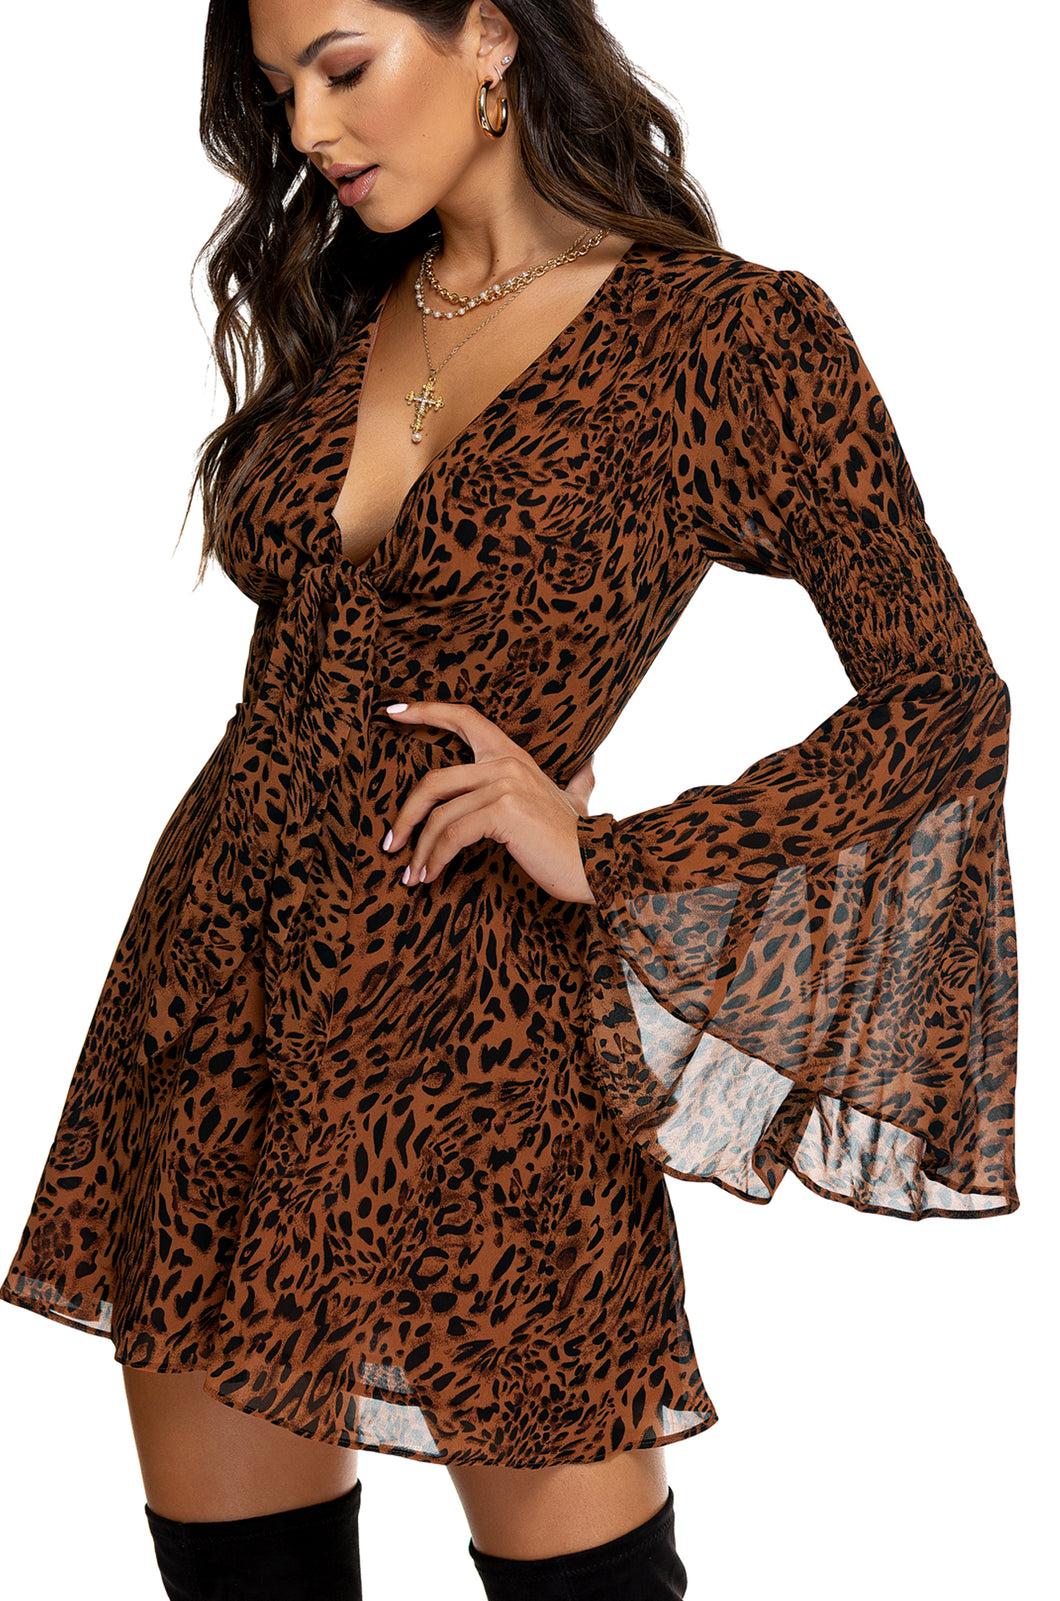 Perfect Romance Dress - Leopard